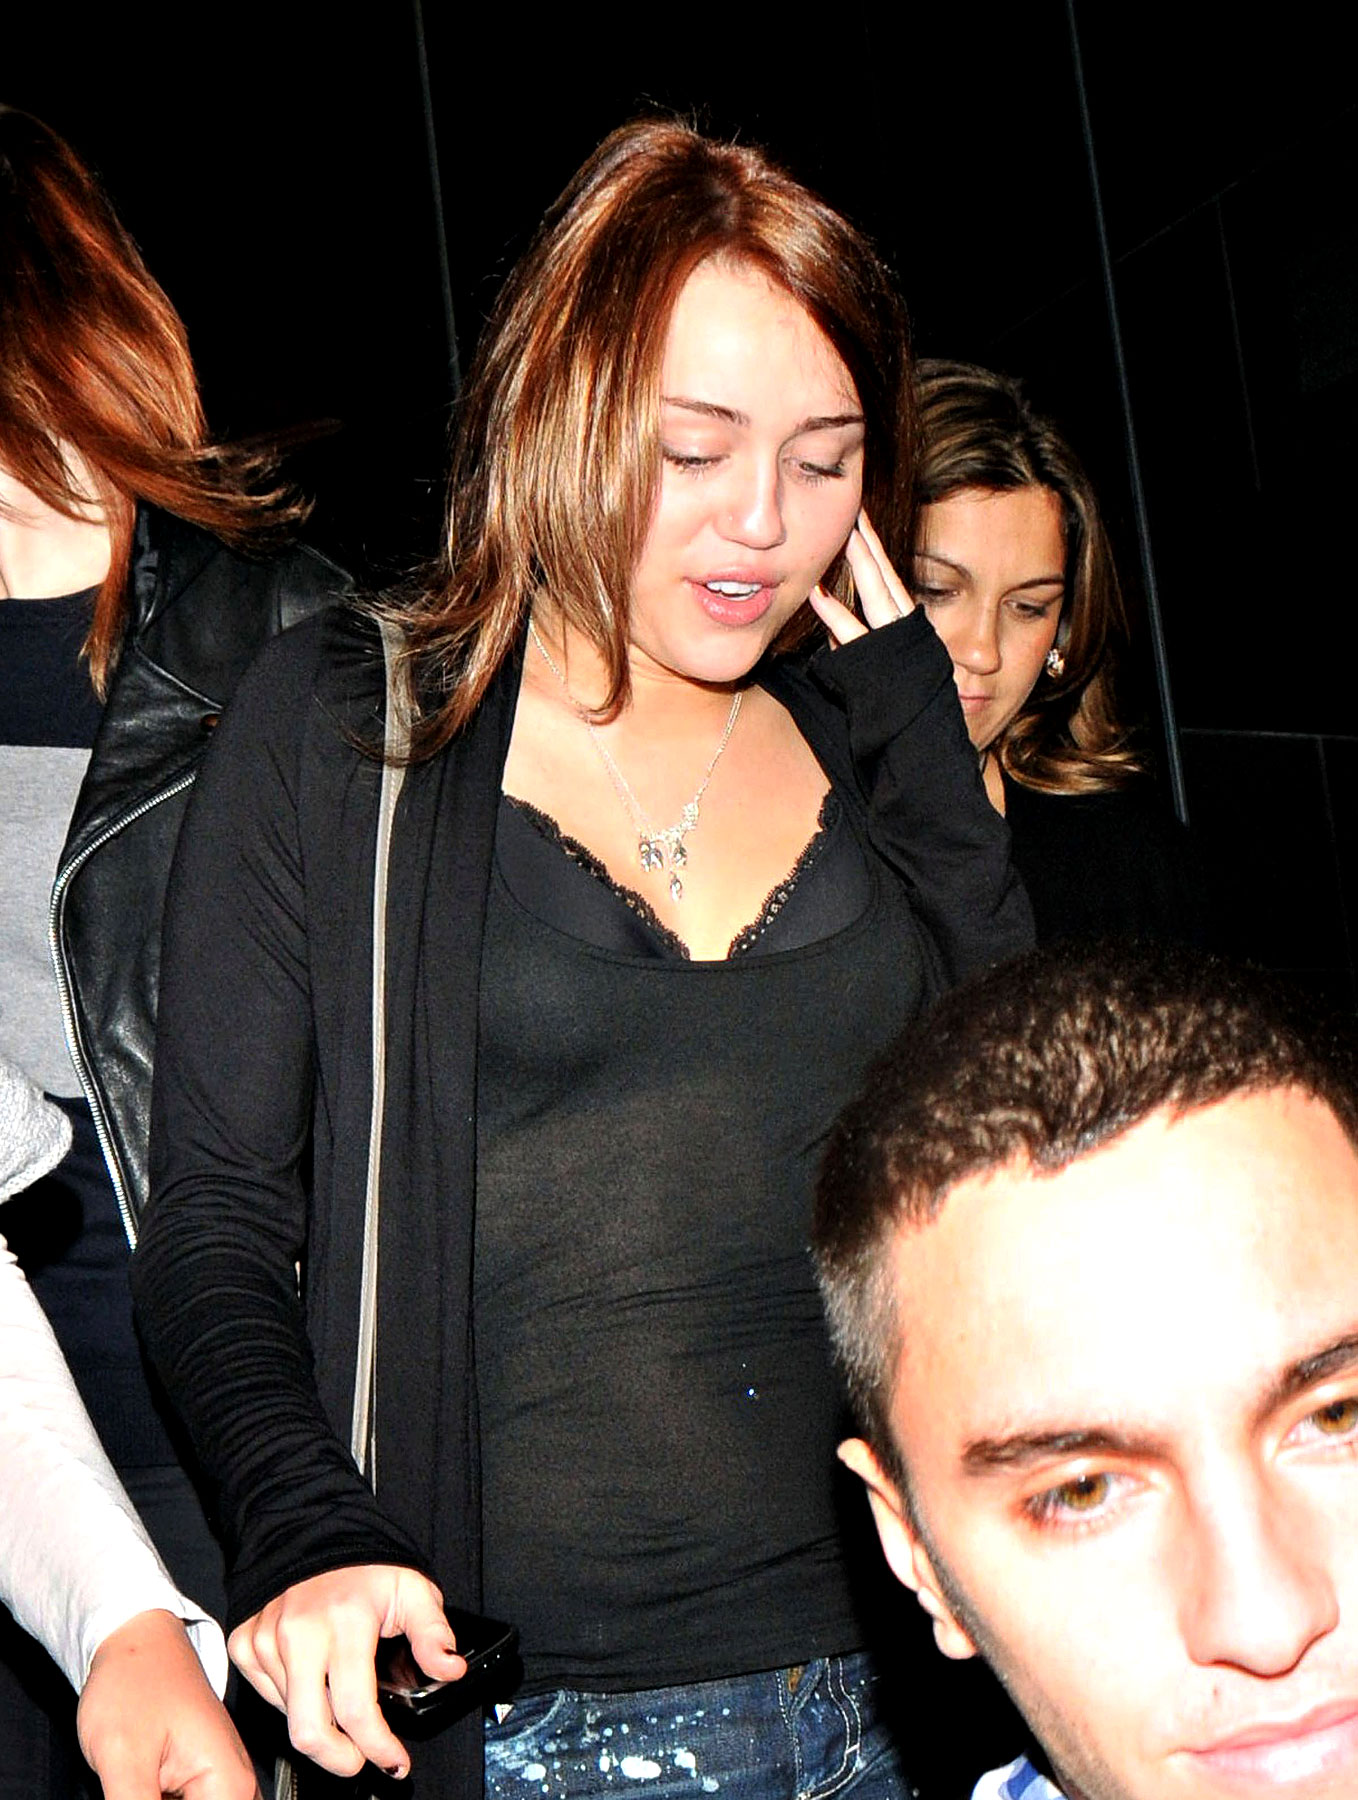 Miley Cyrus and Her See-Through Shirt Want to Know What You're Looking At (PHOTOS)